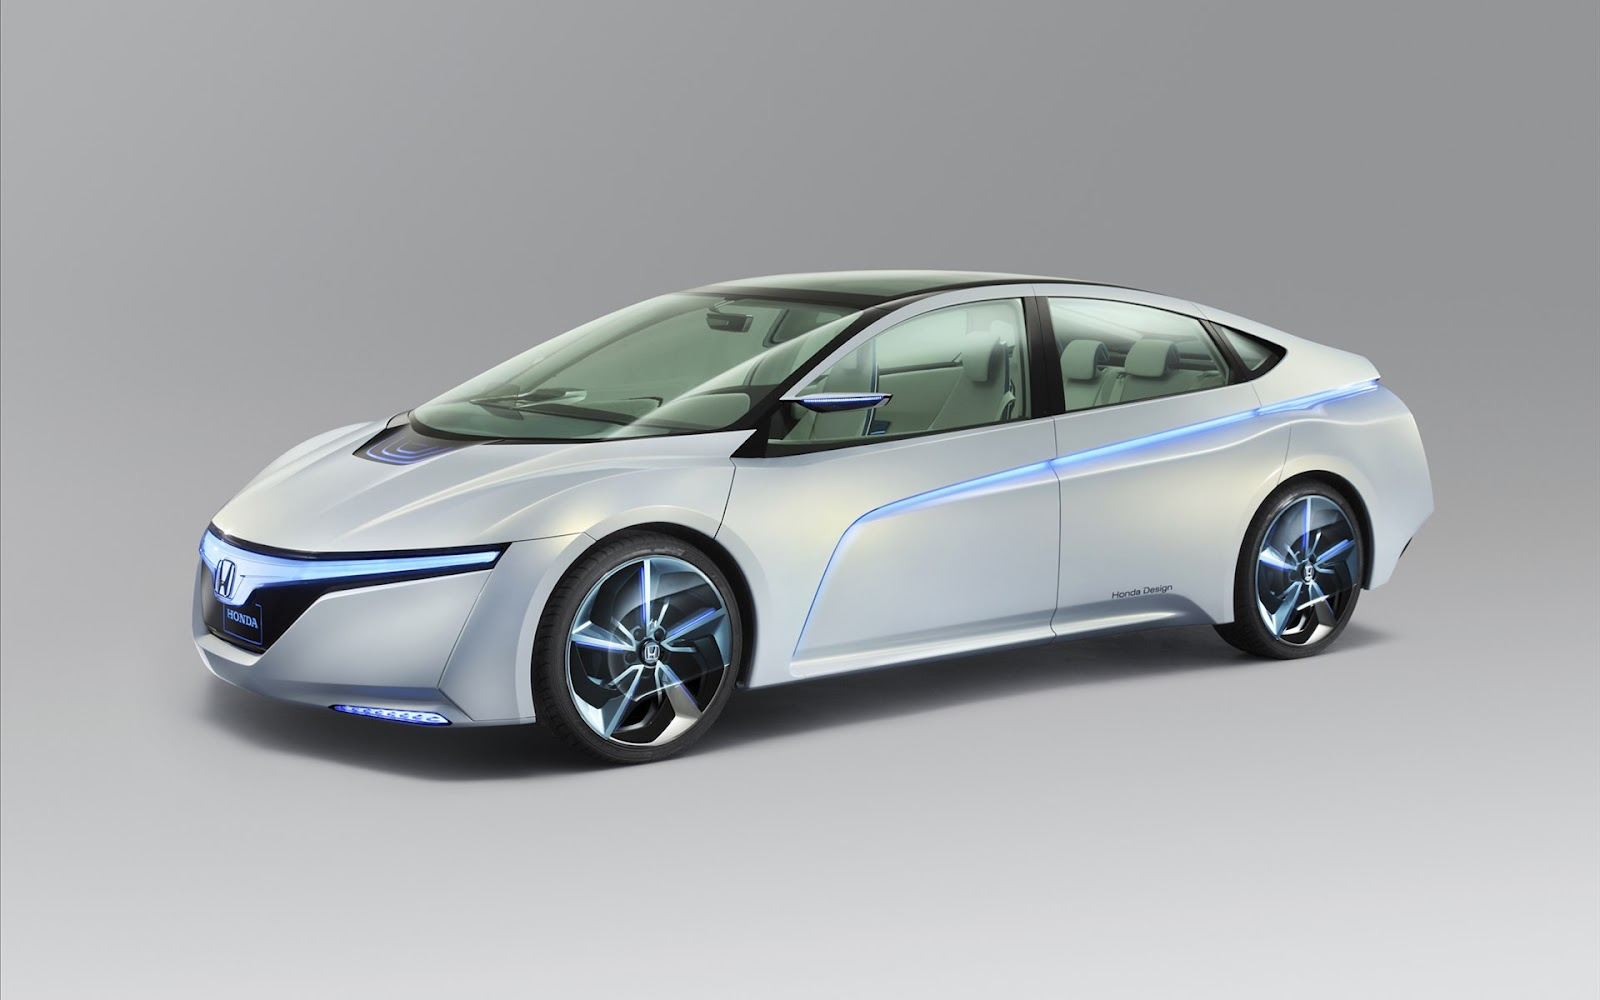 Hd New Wallpaper Honda Concept Car